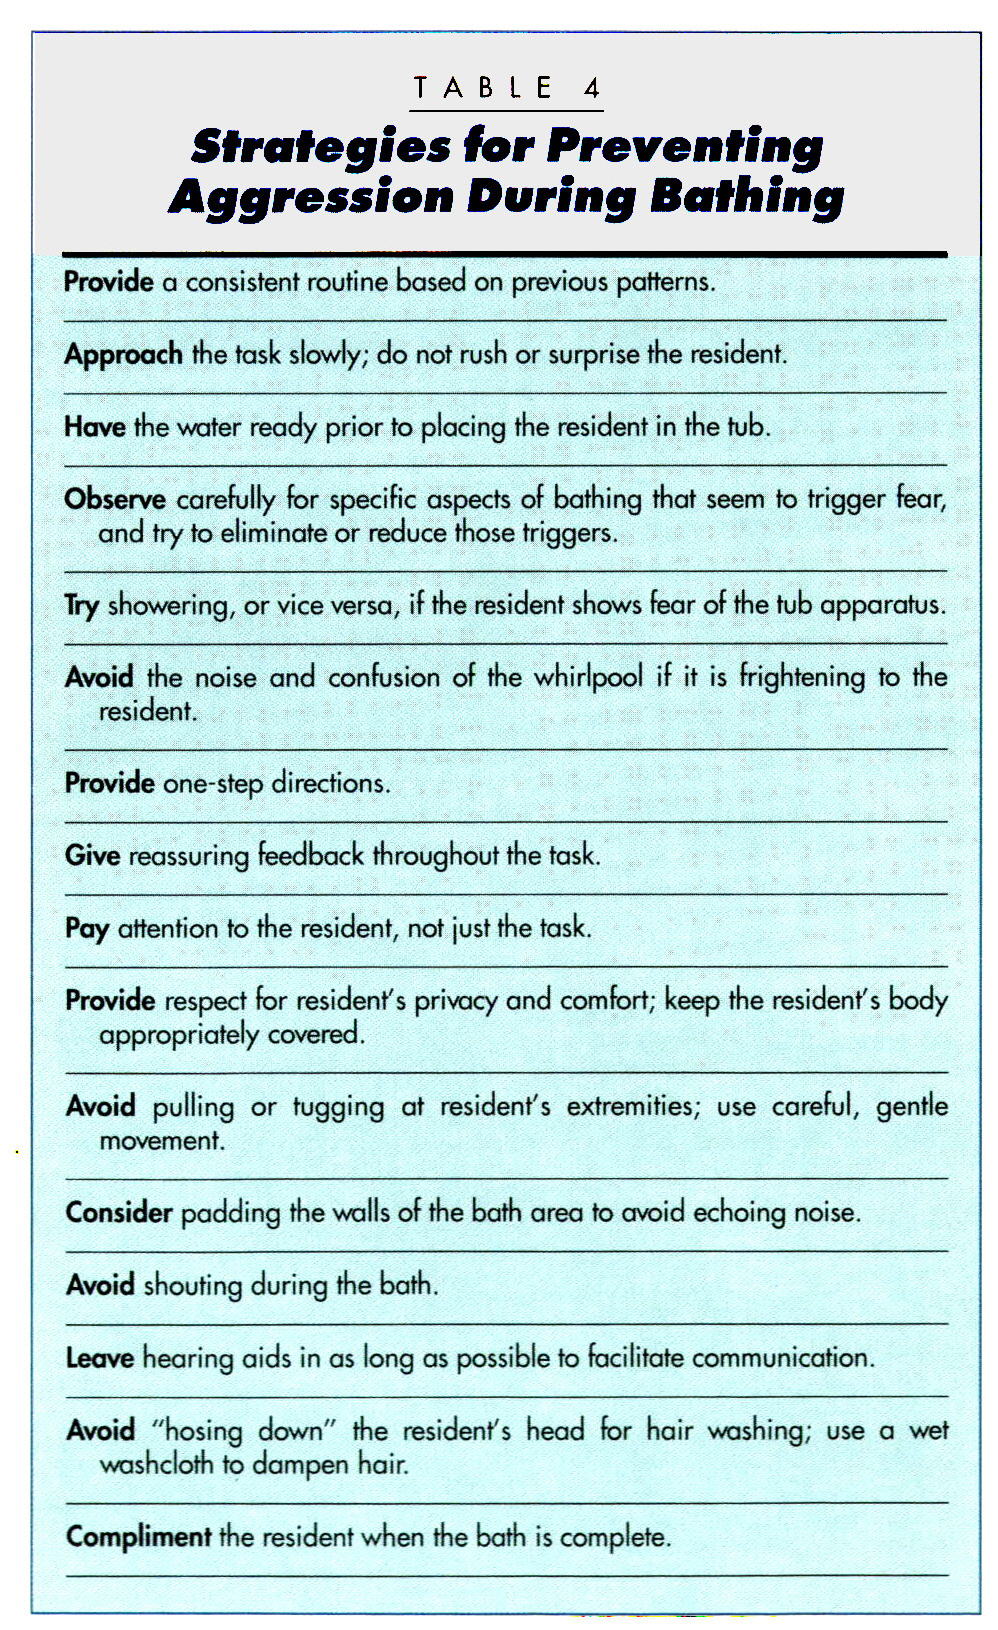 TABLE 4Strategies for Preventing Aggression During Bathing